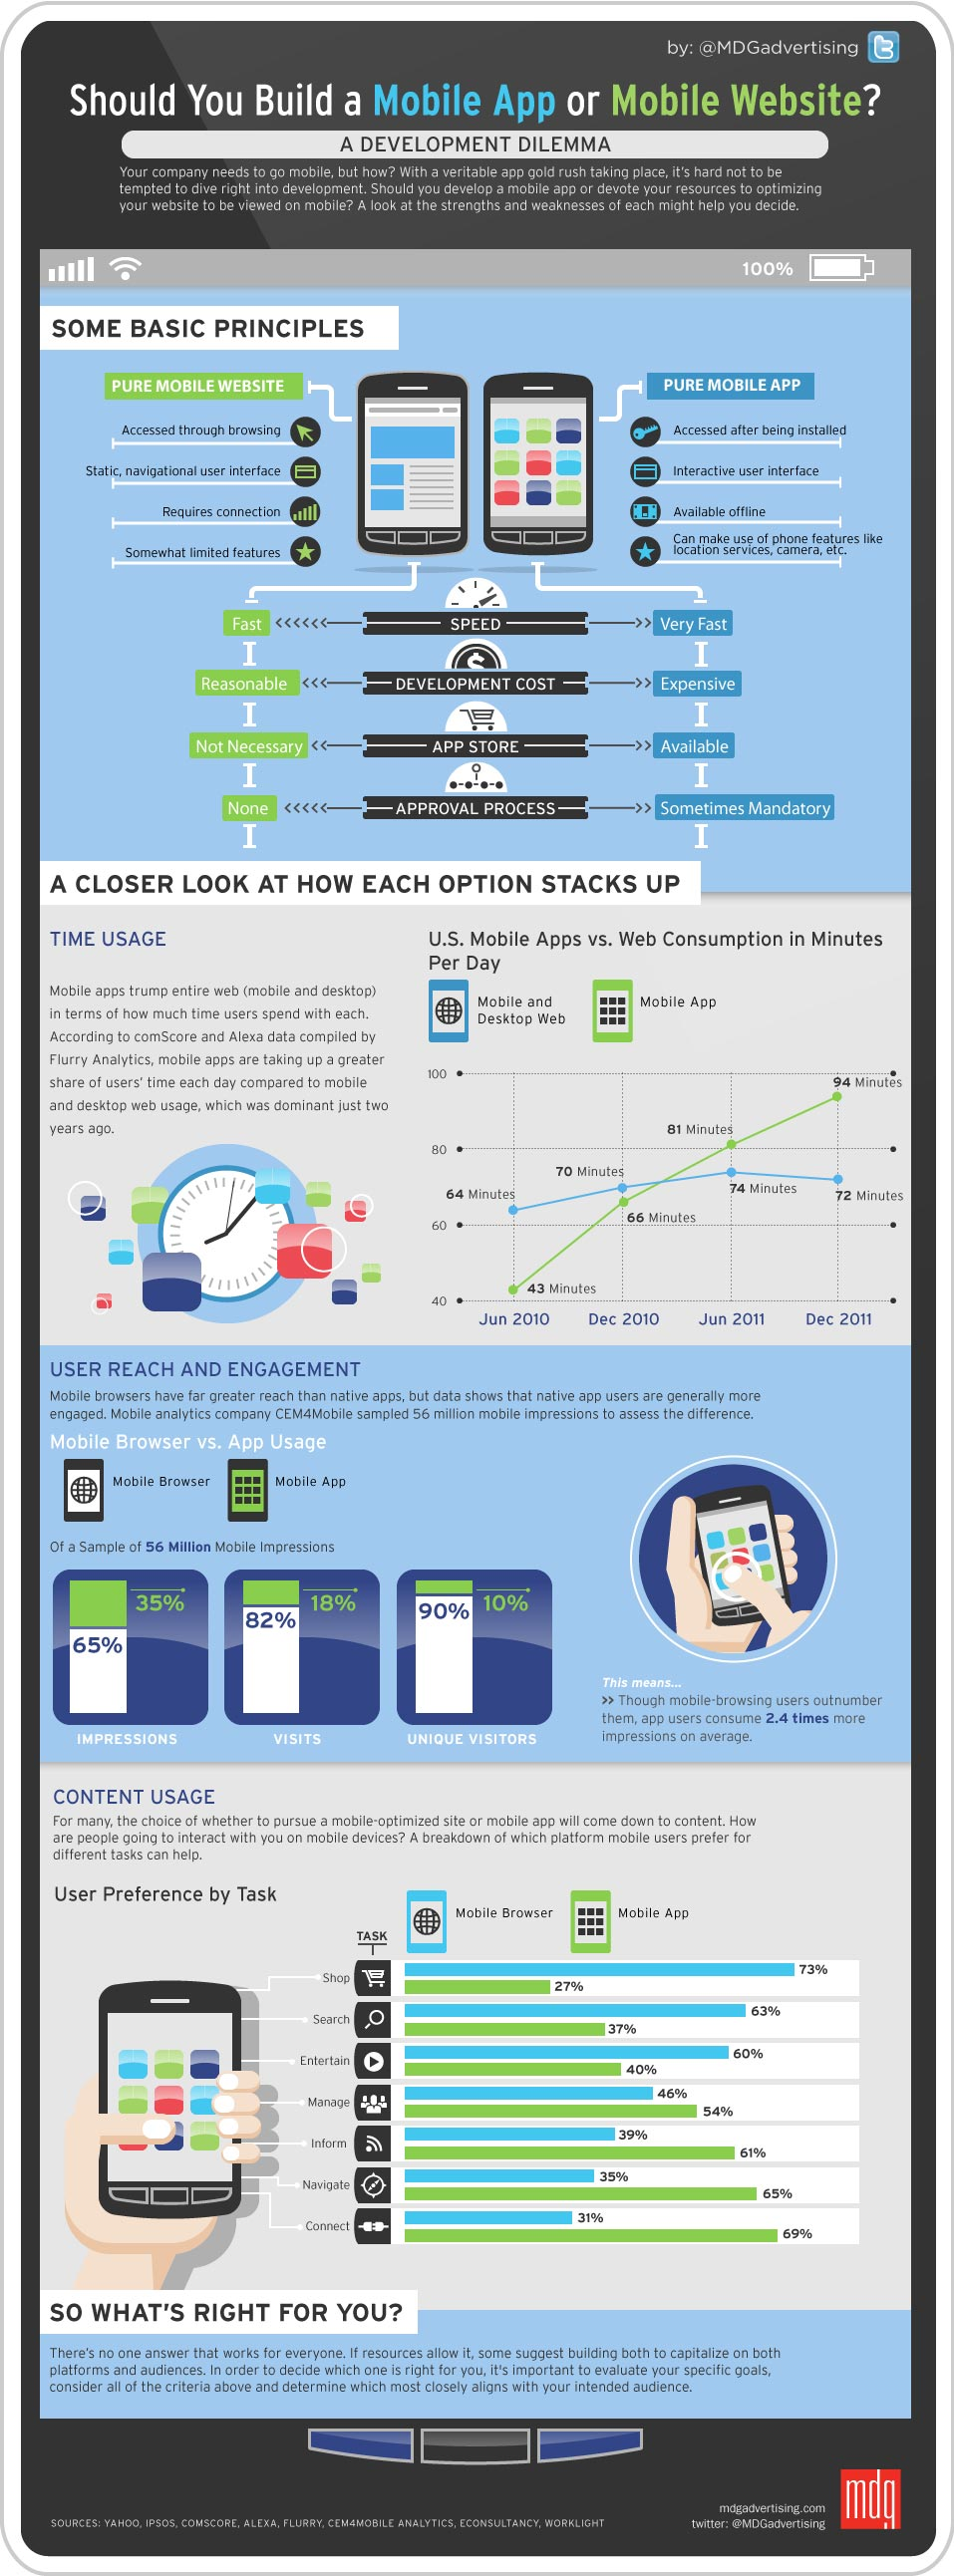 mobile-app-or-mobile-website-infographic